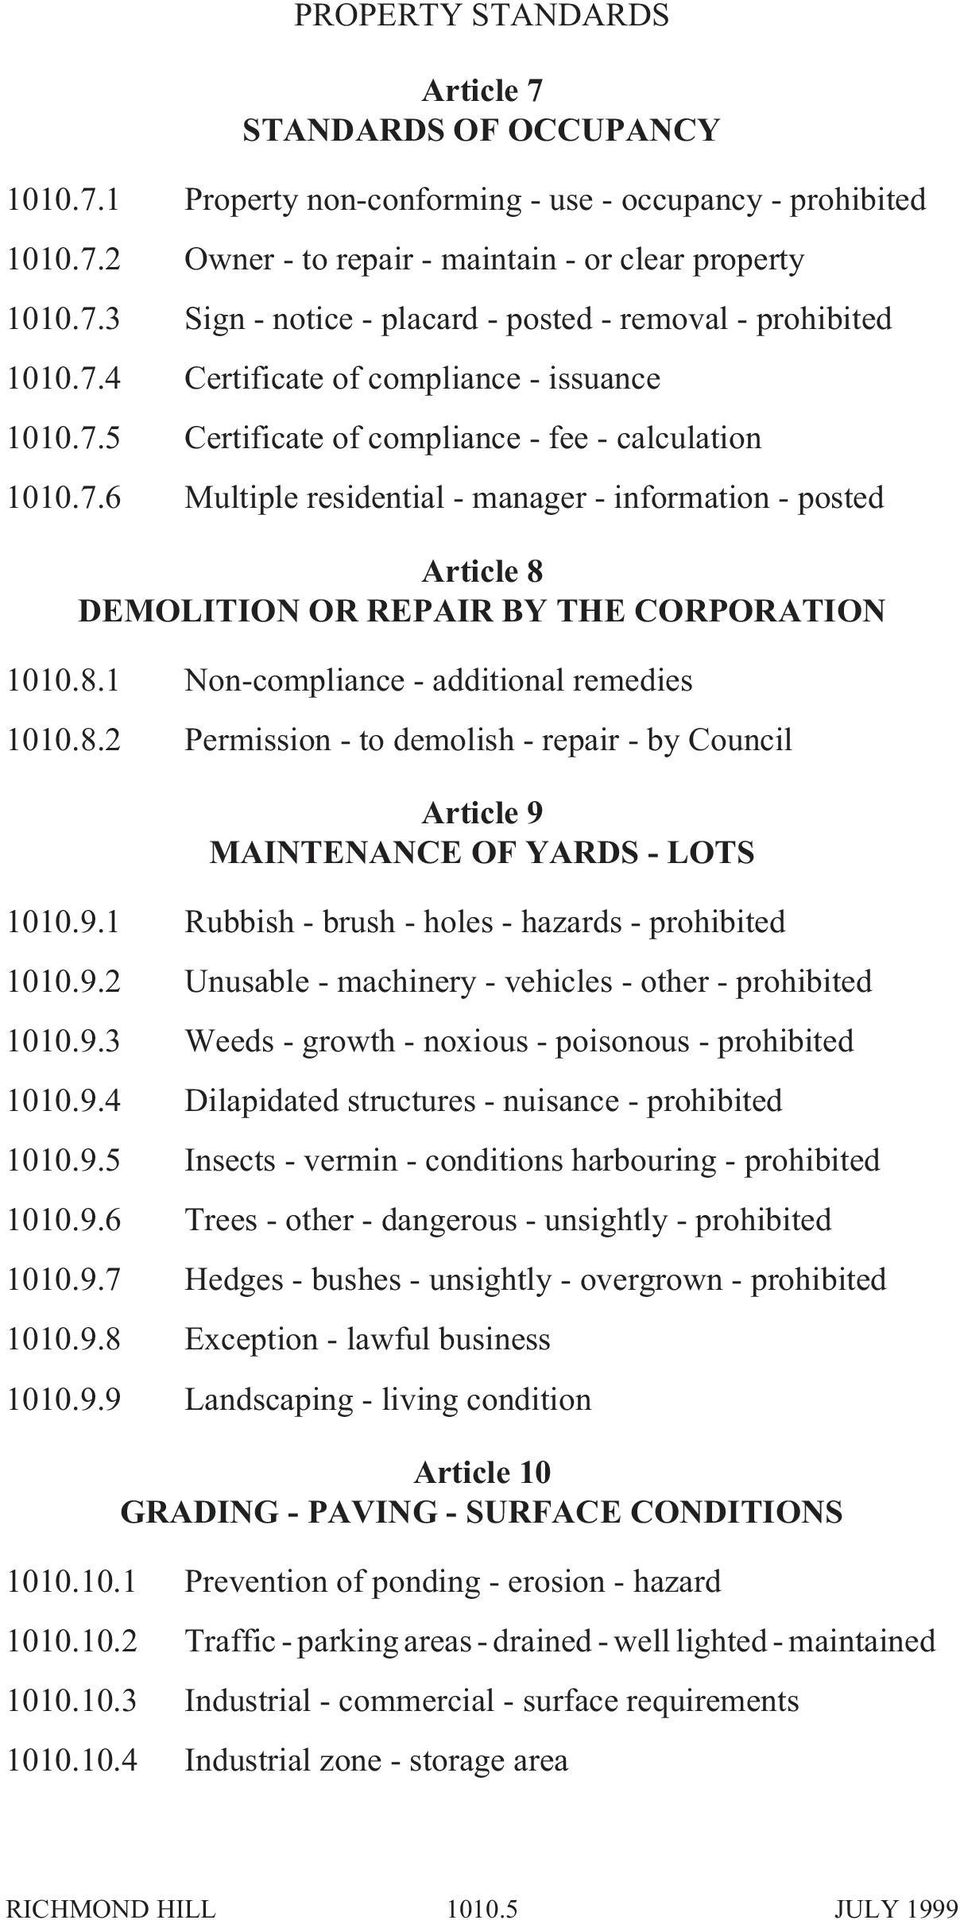 8.1 Non-compliance - additional remedies 1010.8.2 Permission - to demolish - repair - by Council Article 9 MAINTENANCE OF YARDS - LOTS 1010.9.1 Rubbish - brush - holes - hazards - prohibited 1010.9.2 Unusable - machinery - vehicles - other - prohibited 1010.